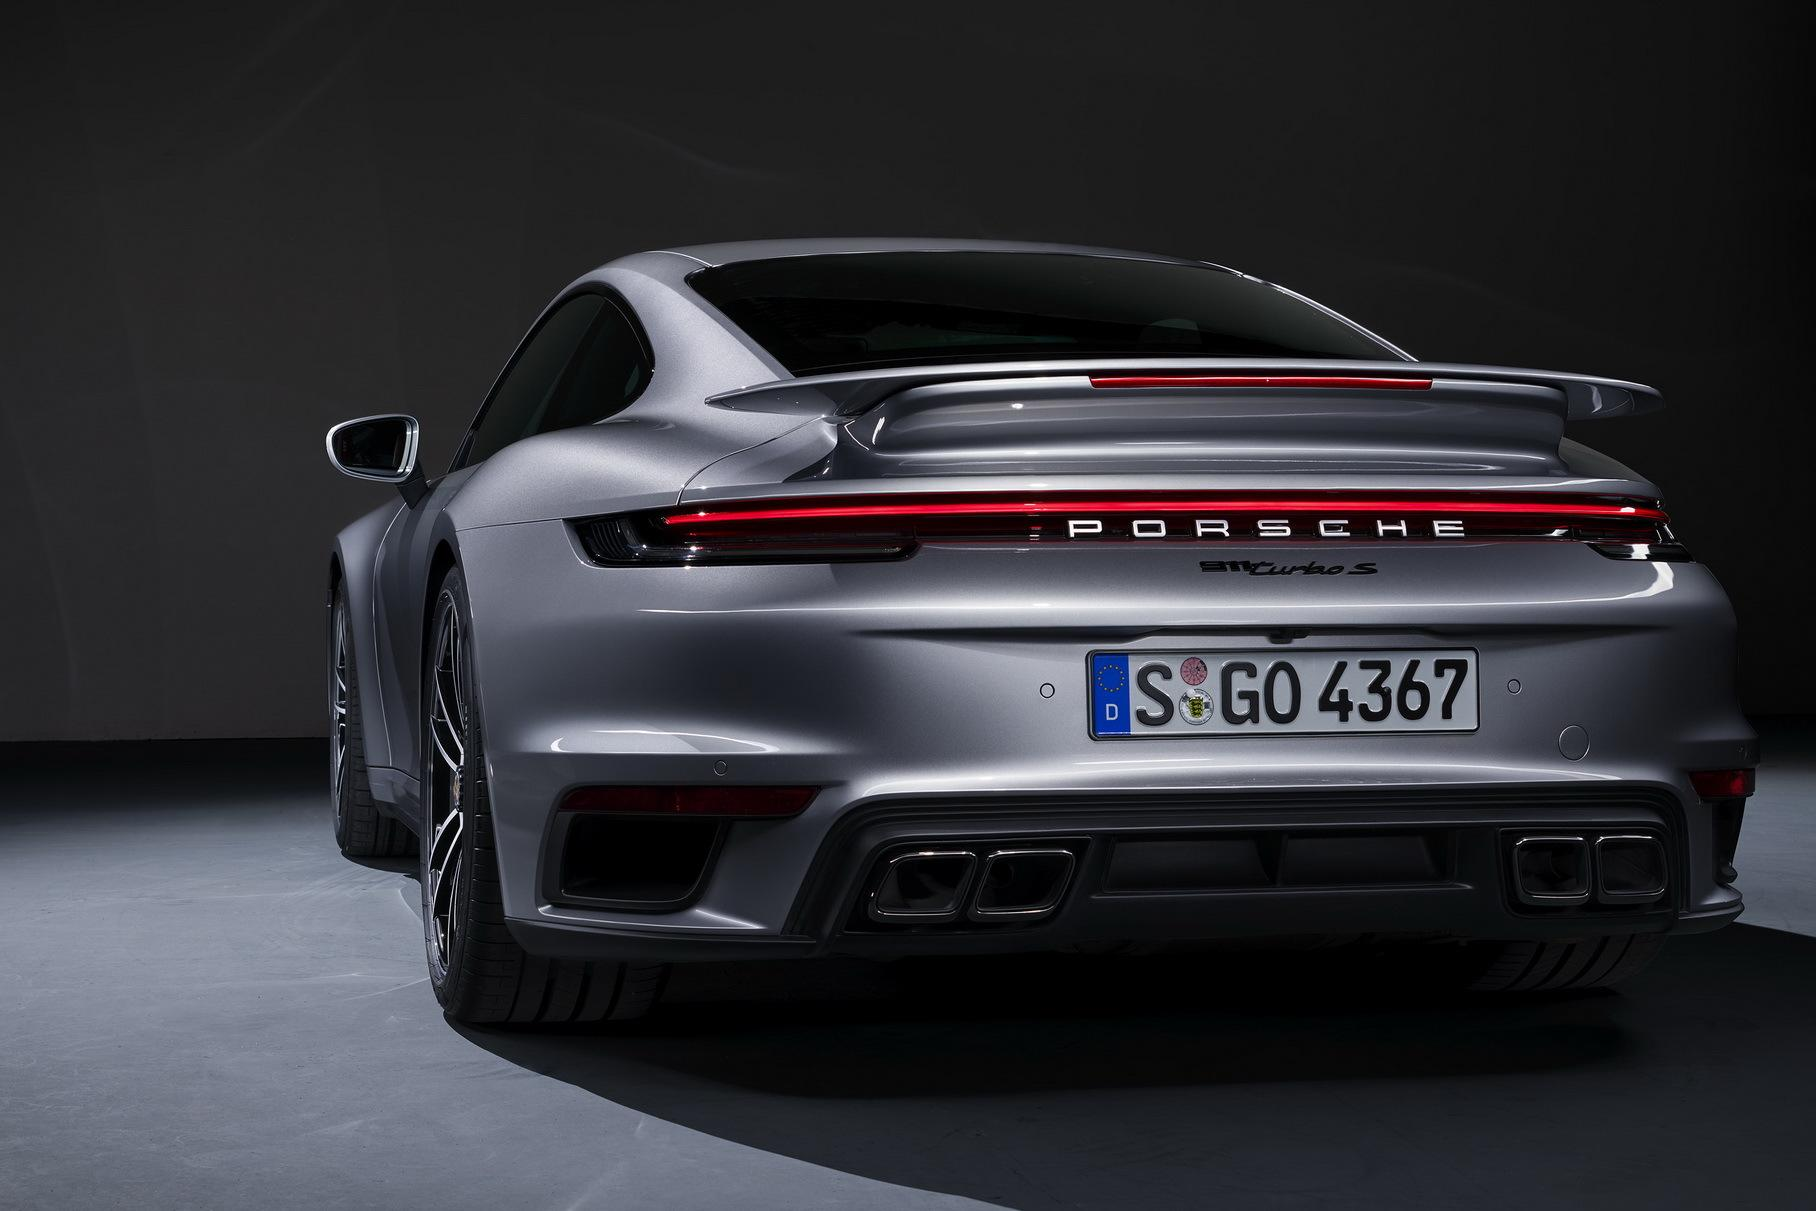 With up to 650 hp (485 kW) and 800 Nm (590 lb-ft) of torque sourced from its 3.8-liter opposite-six mill, the Porsche 911 Turbo S is impressively specced by nearly any standard. However, according to CEO Oliver Blume, the iconic model will ultimately switch to a part-electric powertrain.